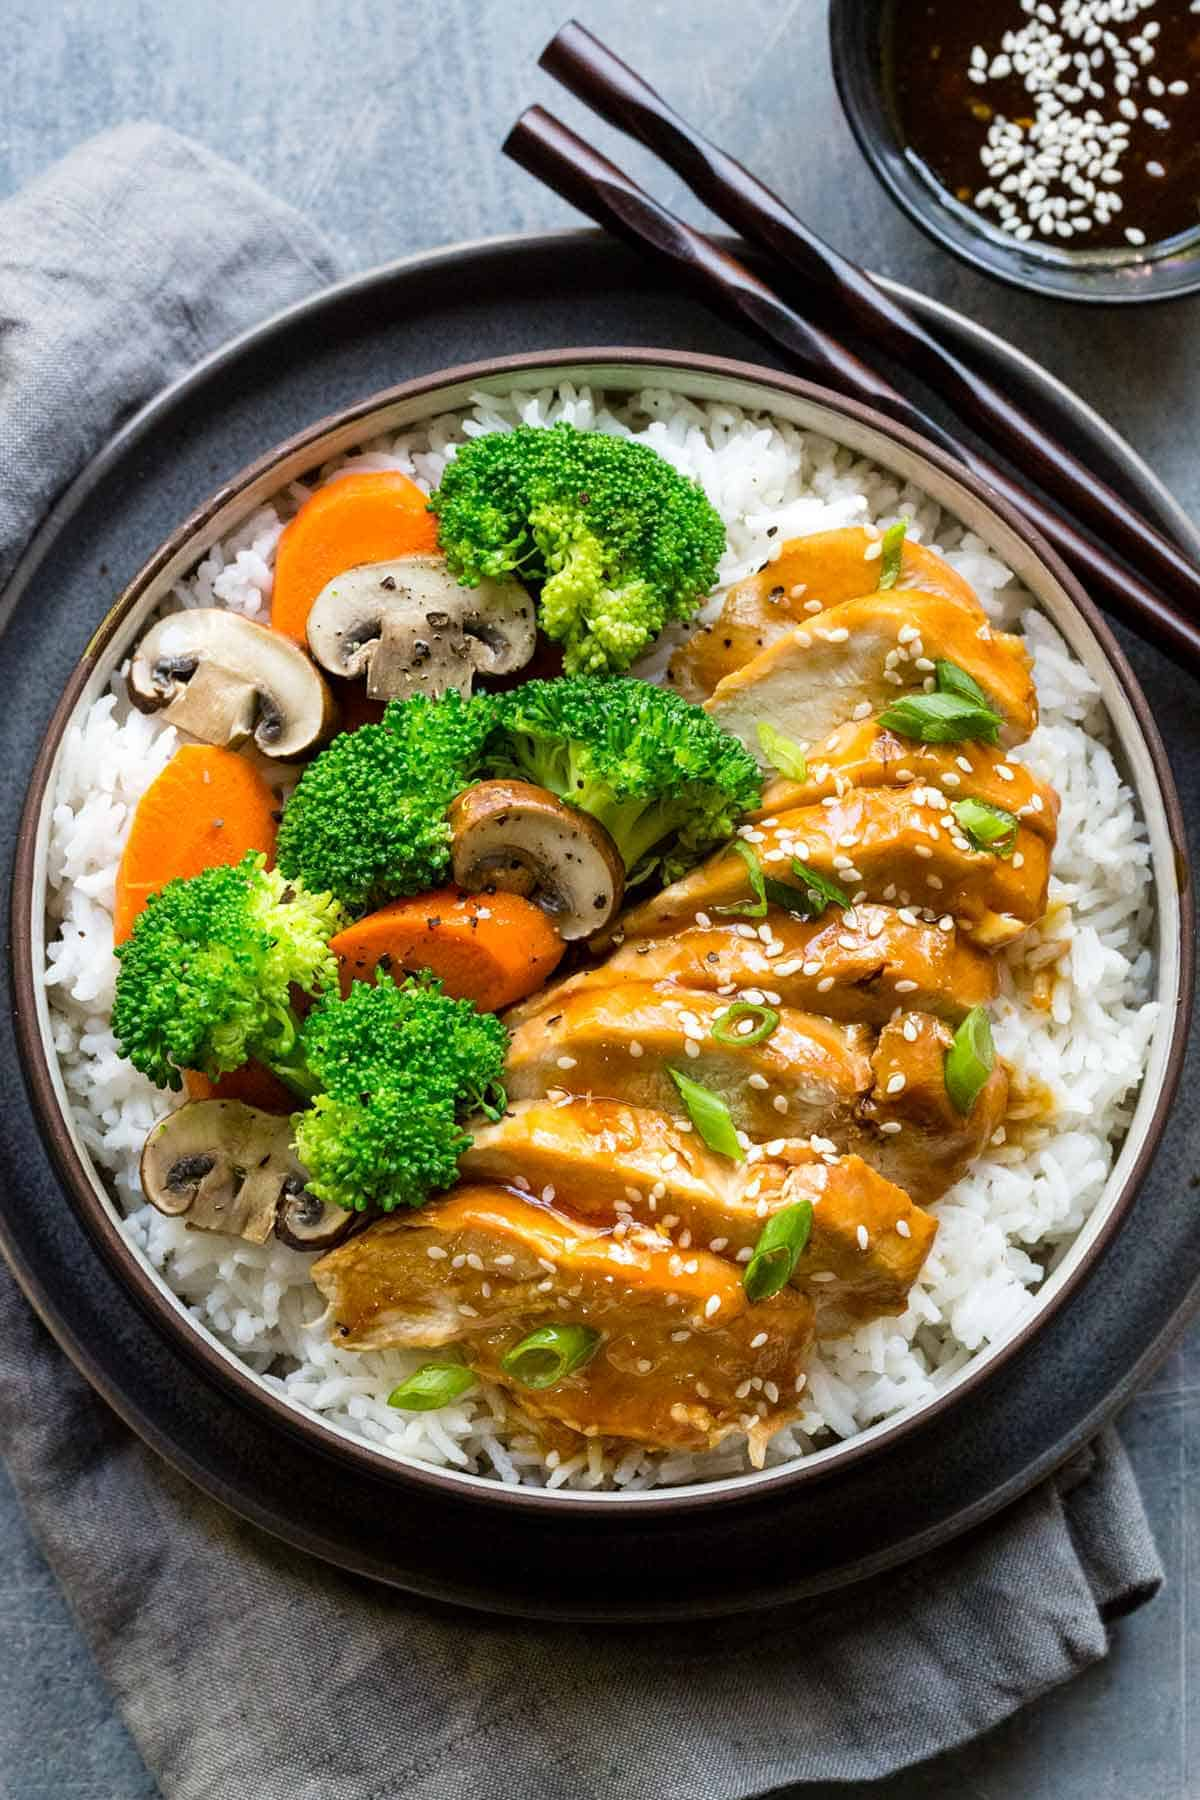 Instant Pot teriyaki chicken in a rice bowl with carrots and broccoli